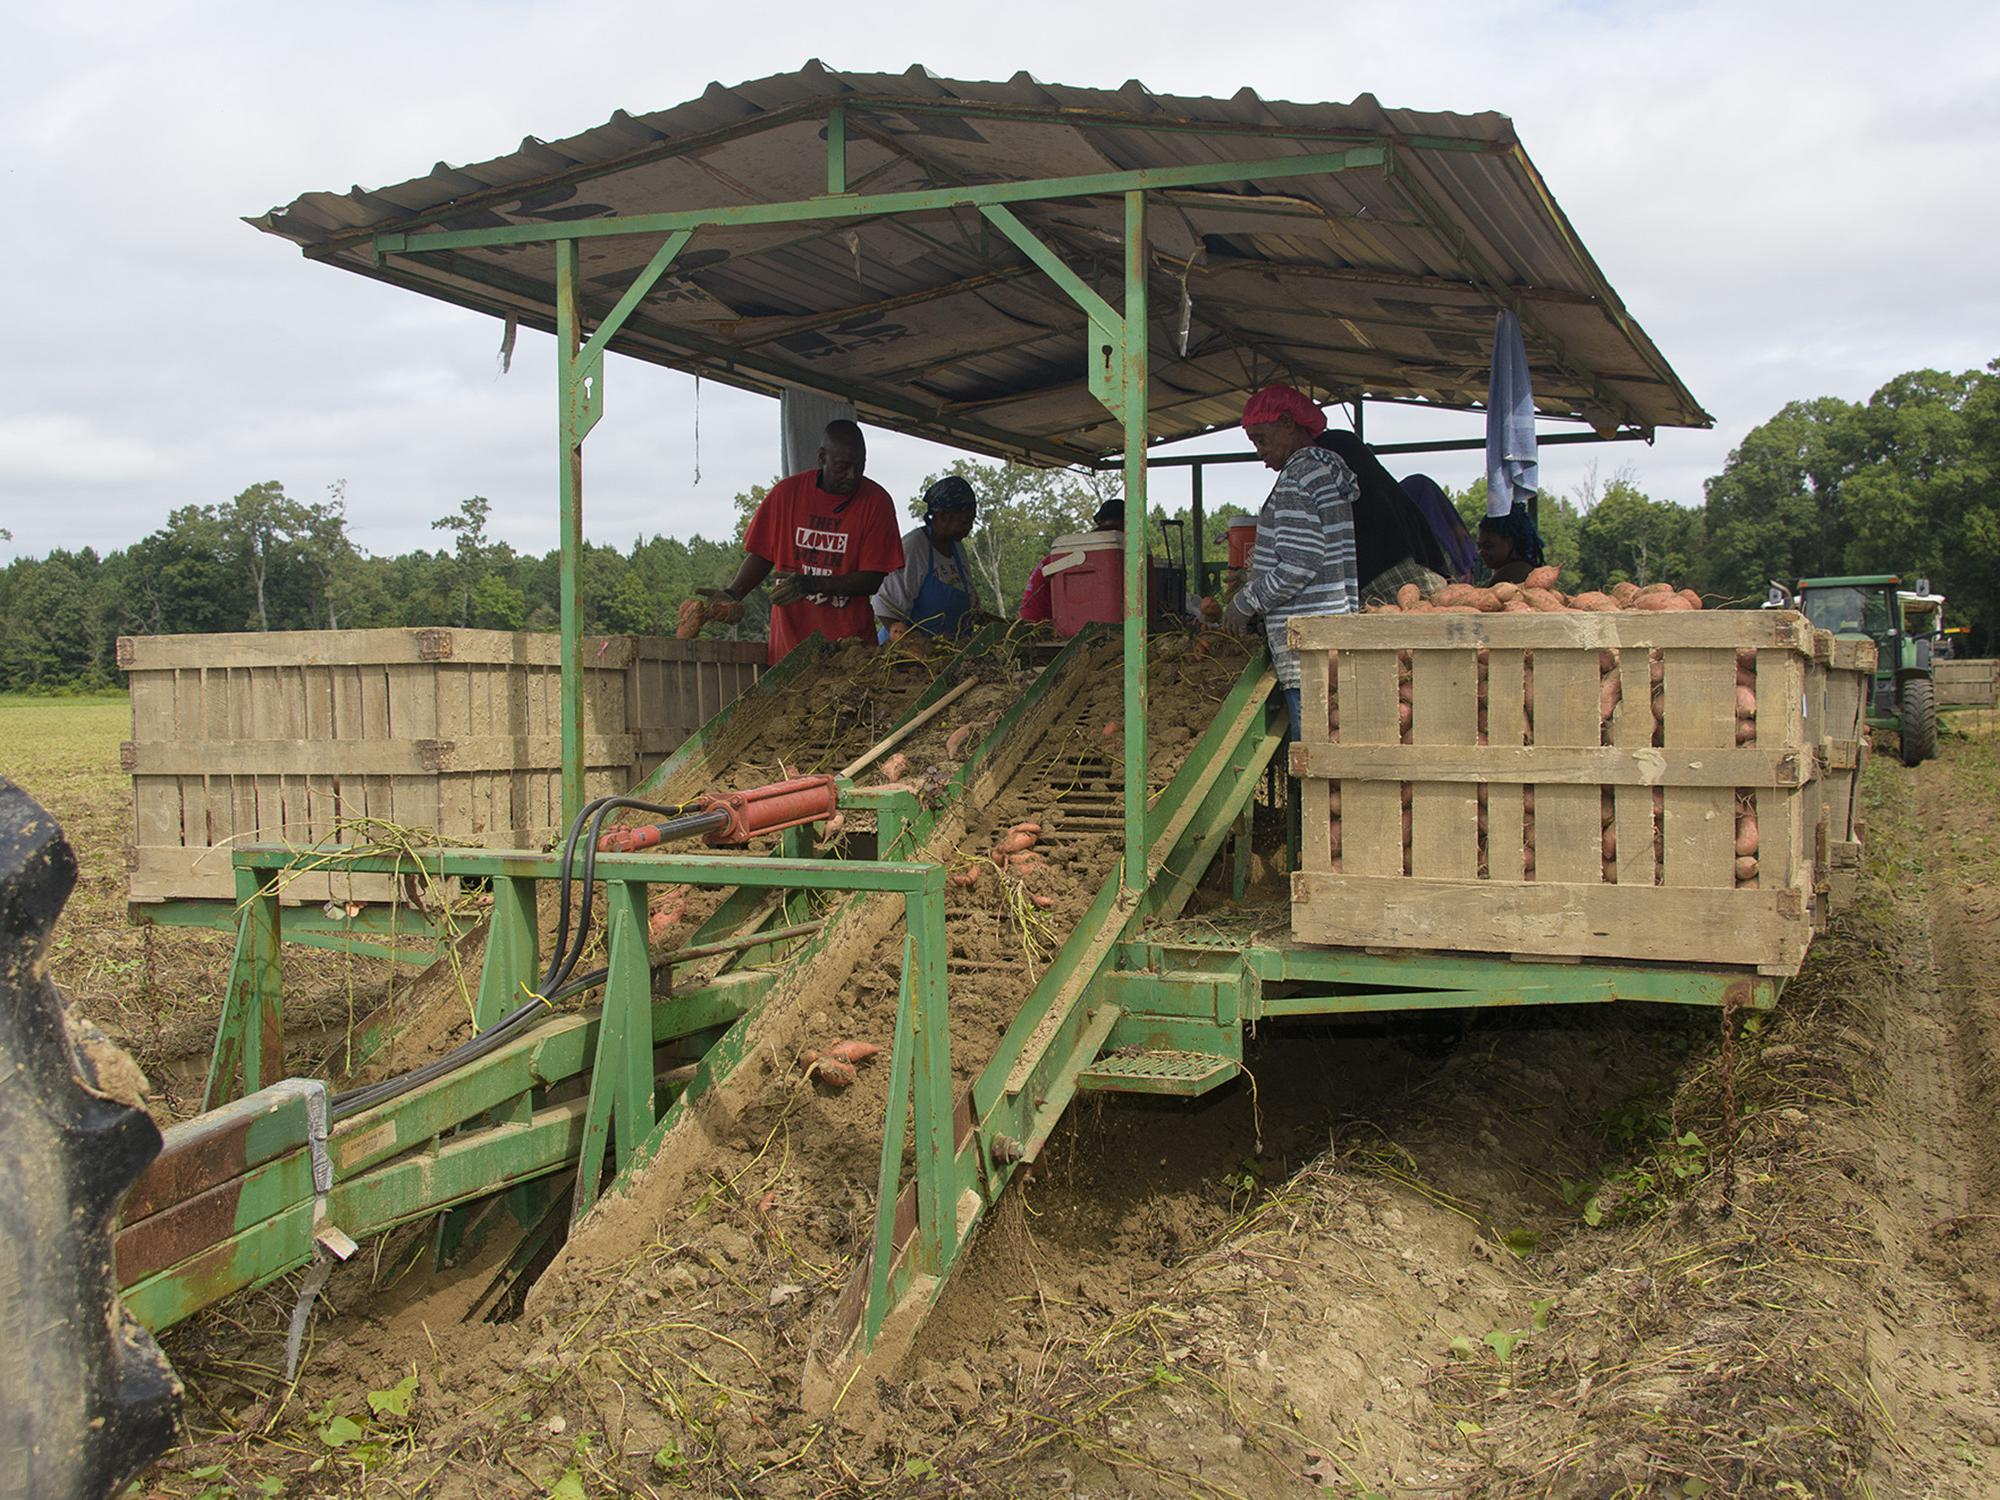 A covered trailer in a field with six workers sorting sweet potatoes into large, wooden crates along the trailer's edges.